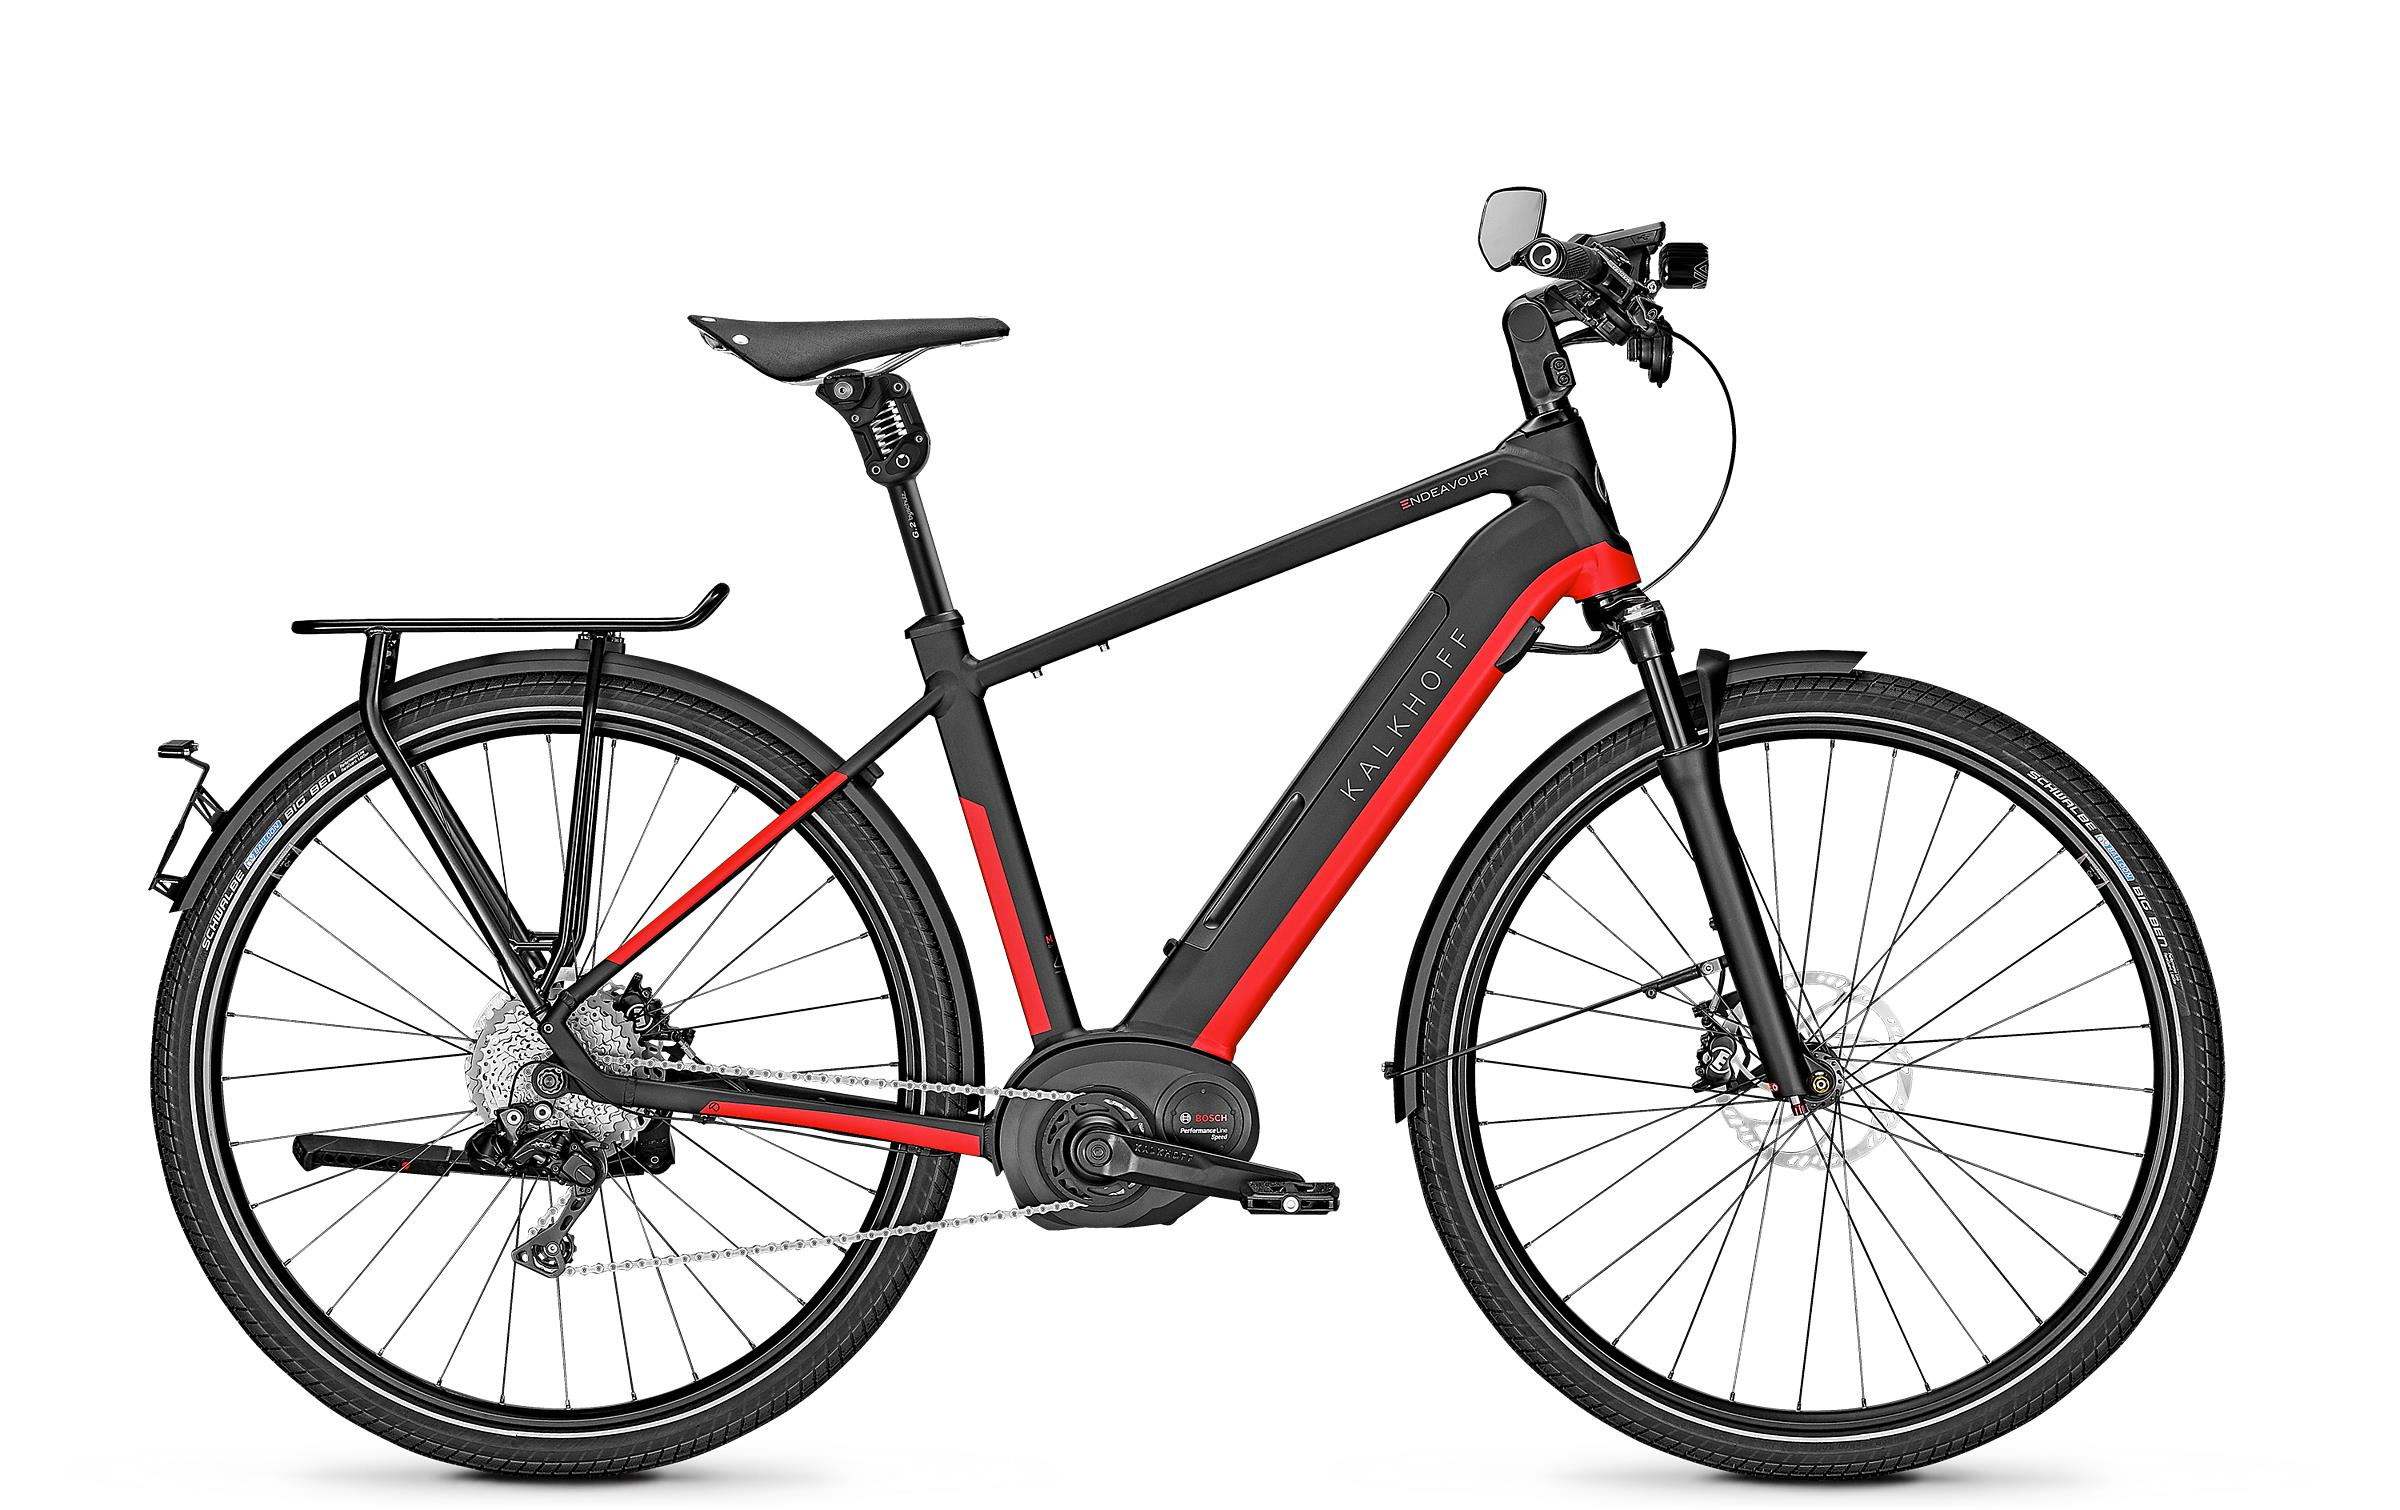 Kalkhoff ENDEAVOUR 5.B EXCITE 45 - 28 Diamant 482 Wh -  magicblack/firered glossy 2019